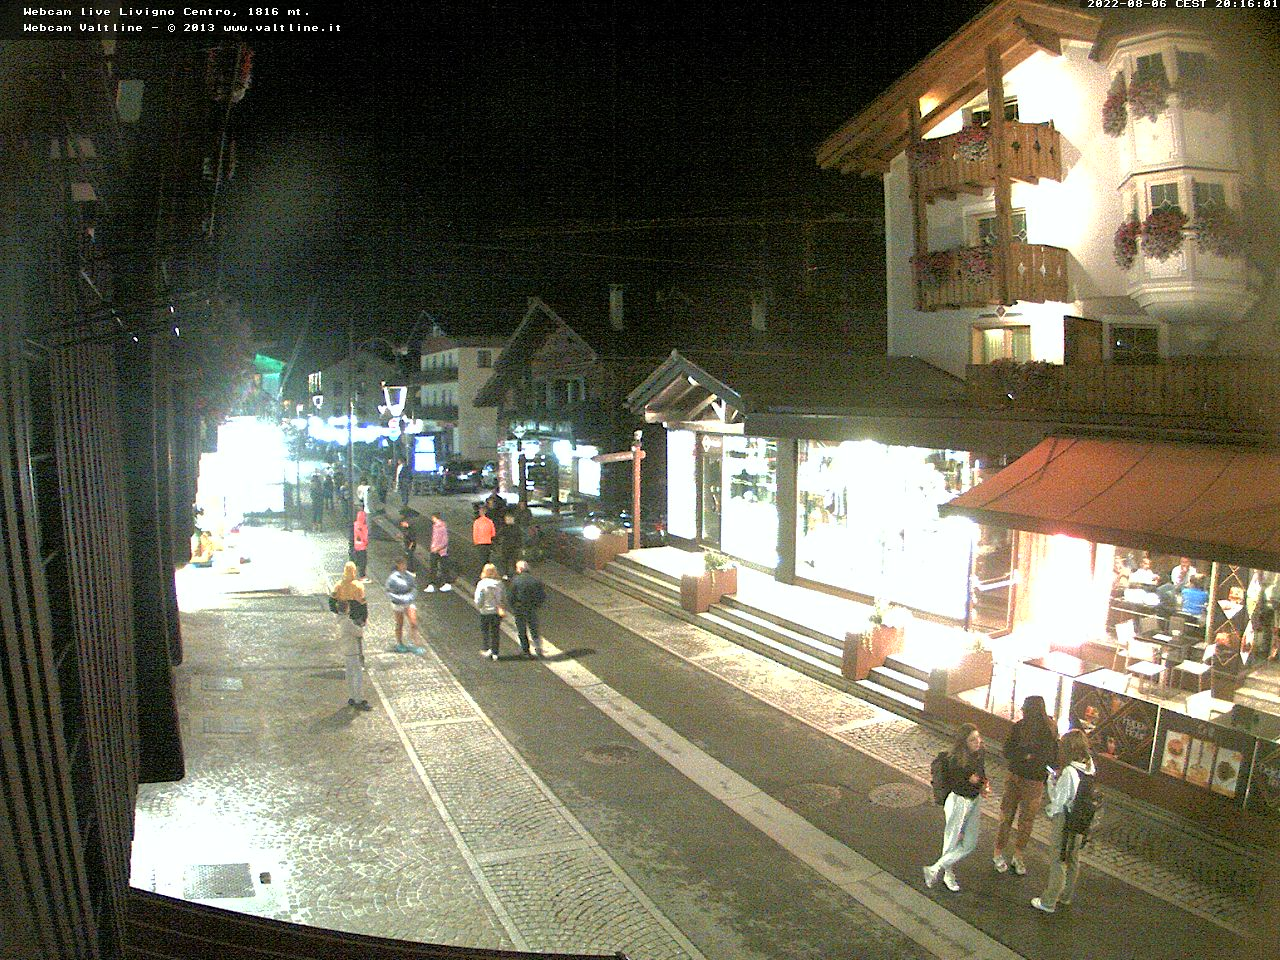 Webcam Livigno La via Plan di Livigno vista da Hotel Touring